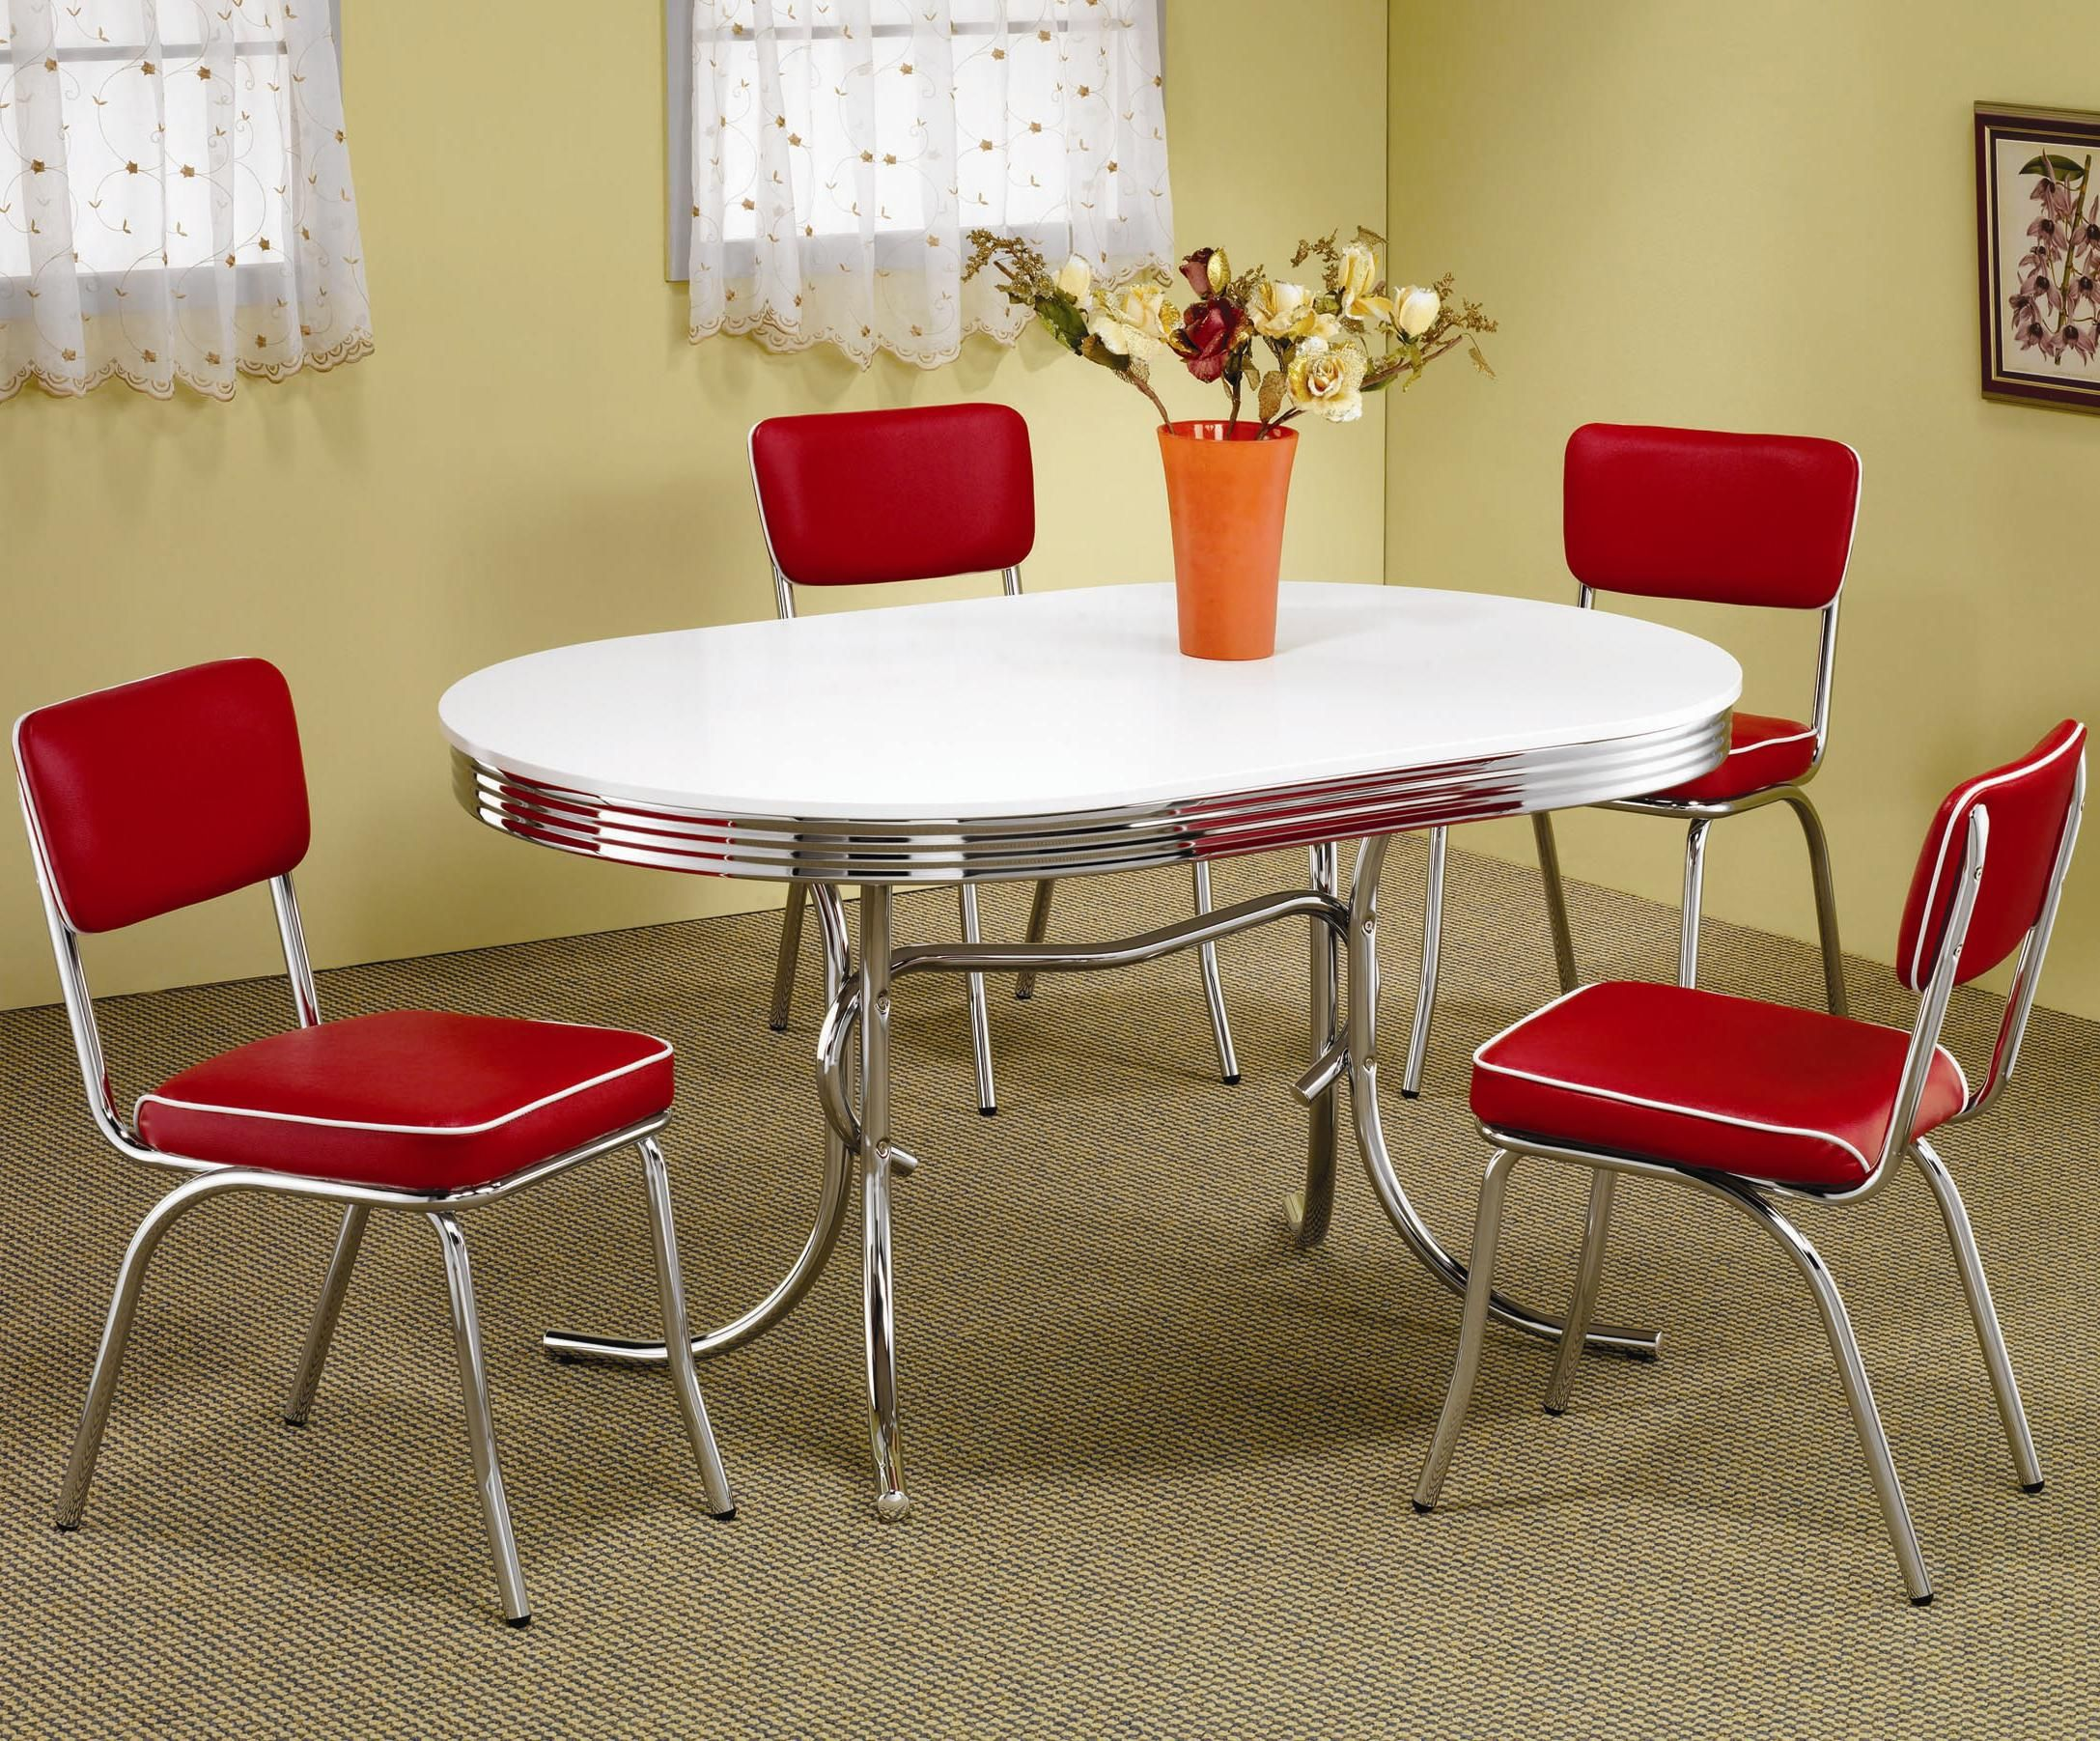 Retro 5 Piece Chrome Plated Oval Dining Table With Red Vinyl Cover Pleasing Oval Dining Room Table Set Inspiration